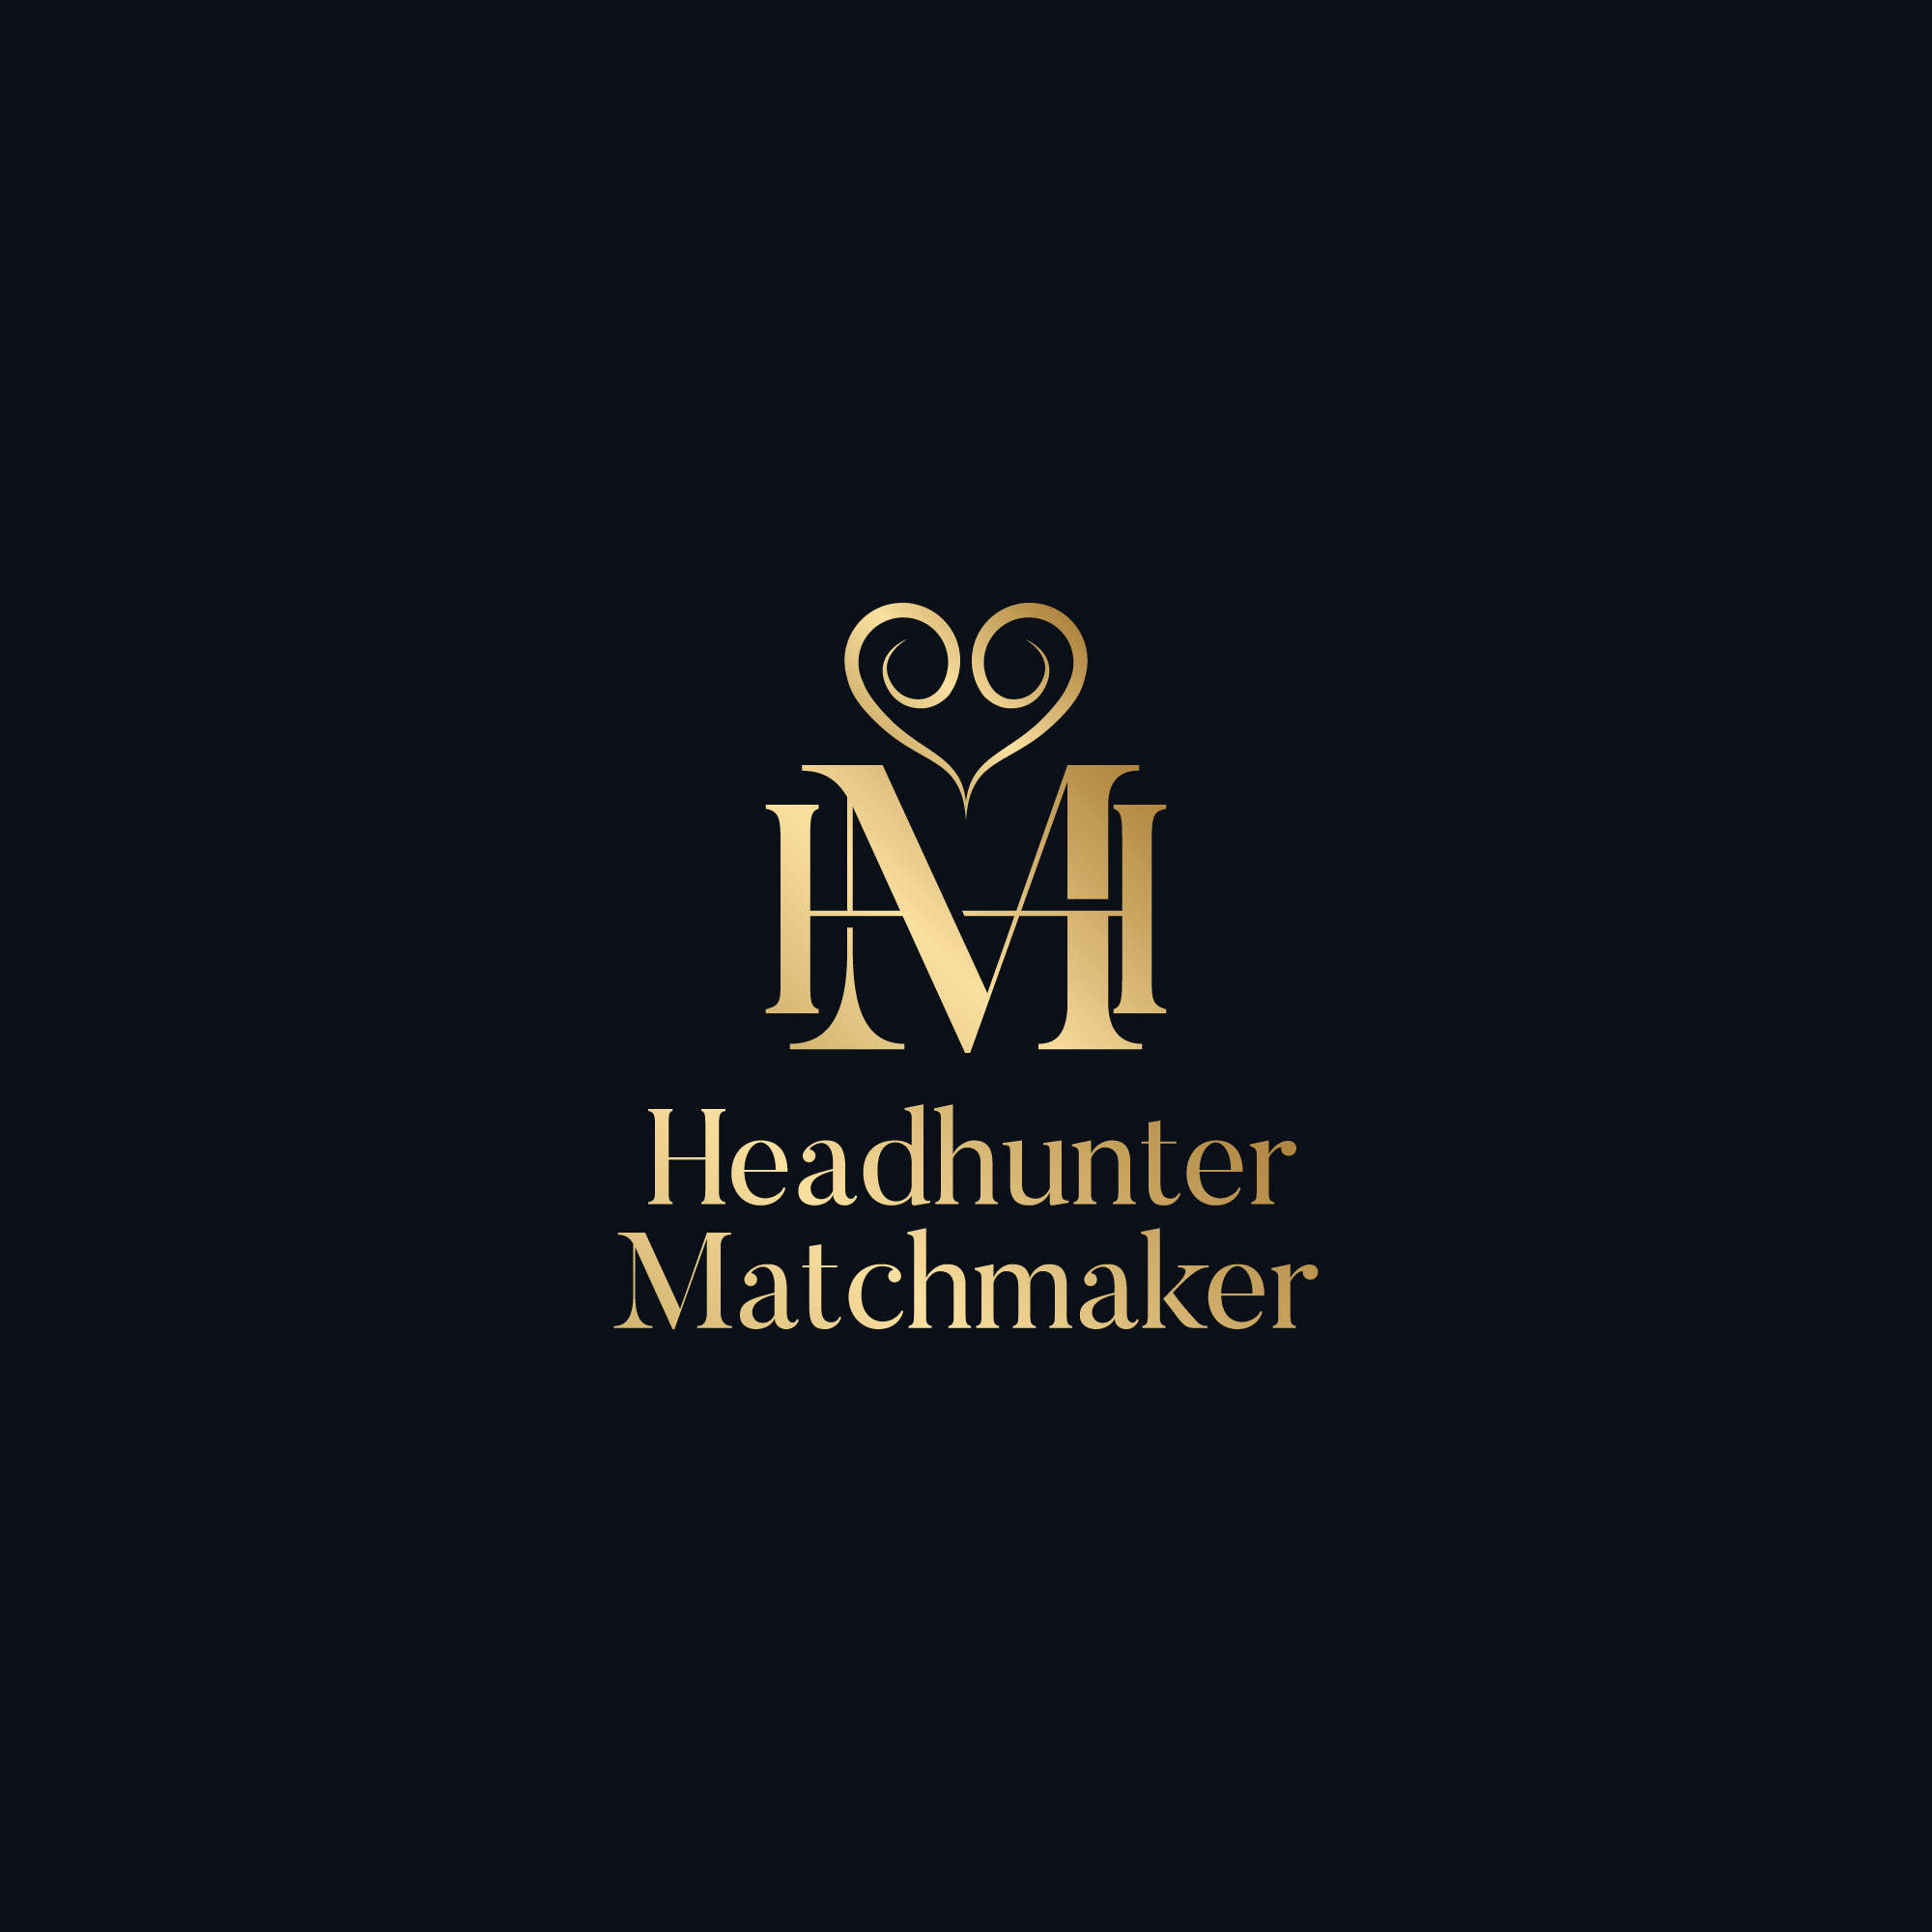 Headhunter Matchmaker(tm)  Logo and various headers and misc from last project